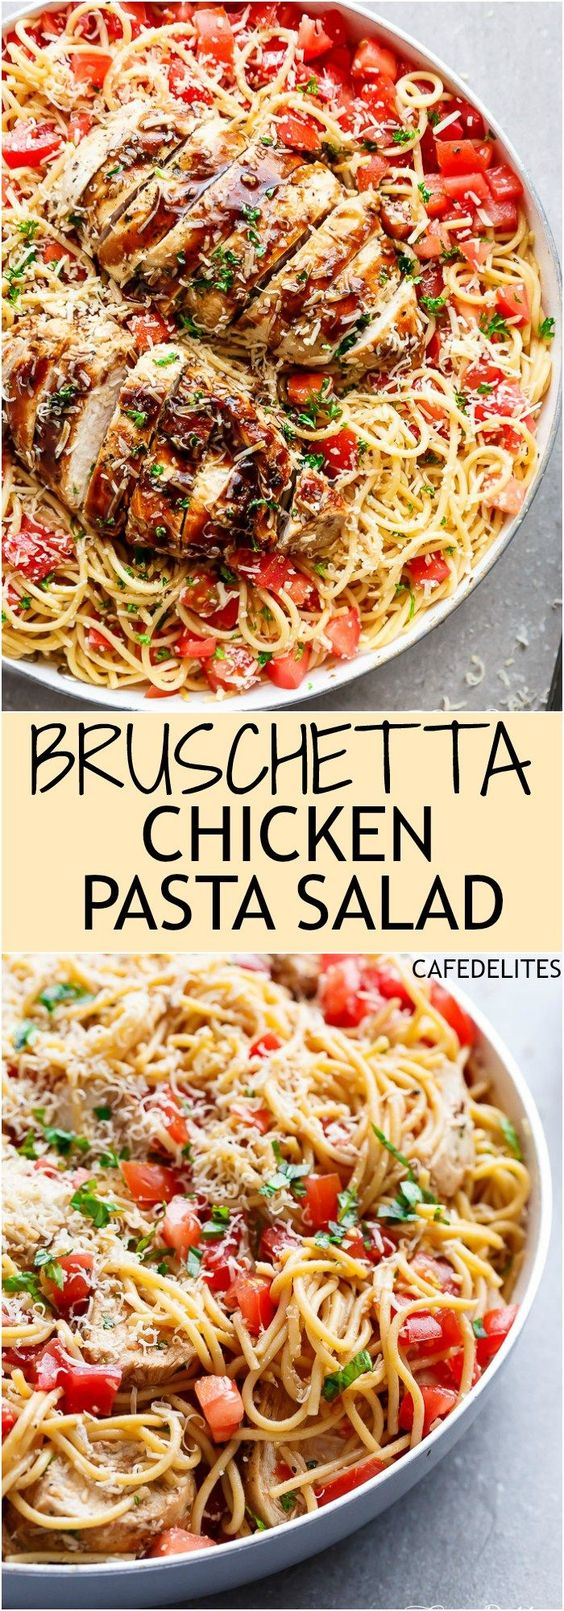 Bruschetta Chicken Pasta Salad Recipe via Cafe Delites - This is a must make for any occasion in minutes! Filled with Italian seasoned grilled chicken, garlic and parmesan cheese! Easy Pasta Salad Recipes - The BEST Yummy Barbecue Side Dishes, Potluck Favorites and Summer Dinner Party Crowd Pleasers #pastasaladrecipes #pastasalads #pastasalad #easypastasalad #potluckrecipes #potluck #partyfood #4thofJuly #picnicfood #sidedishrecipes #easysidedishes #cookoutfood #barbecuefood #blockparty